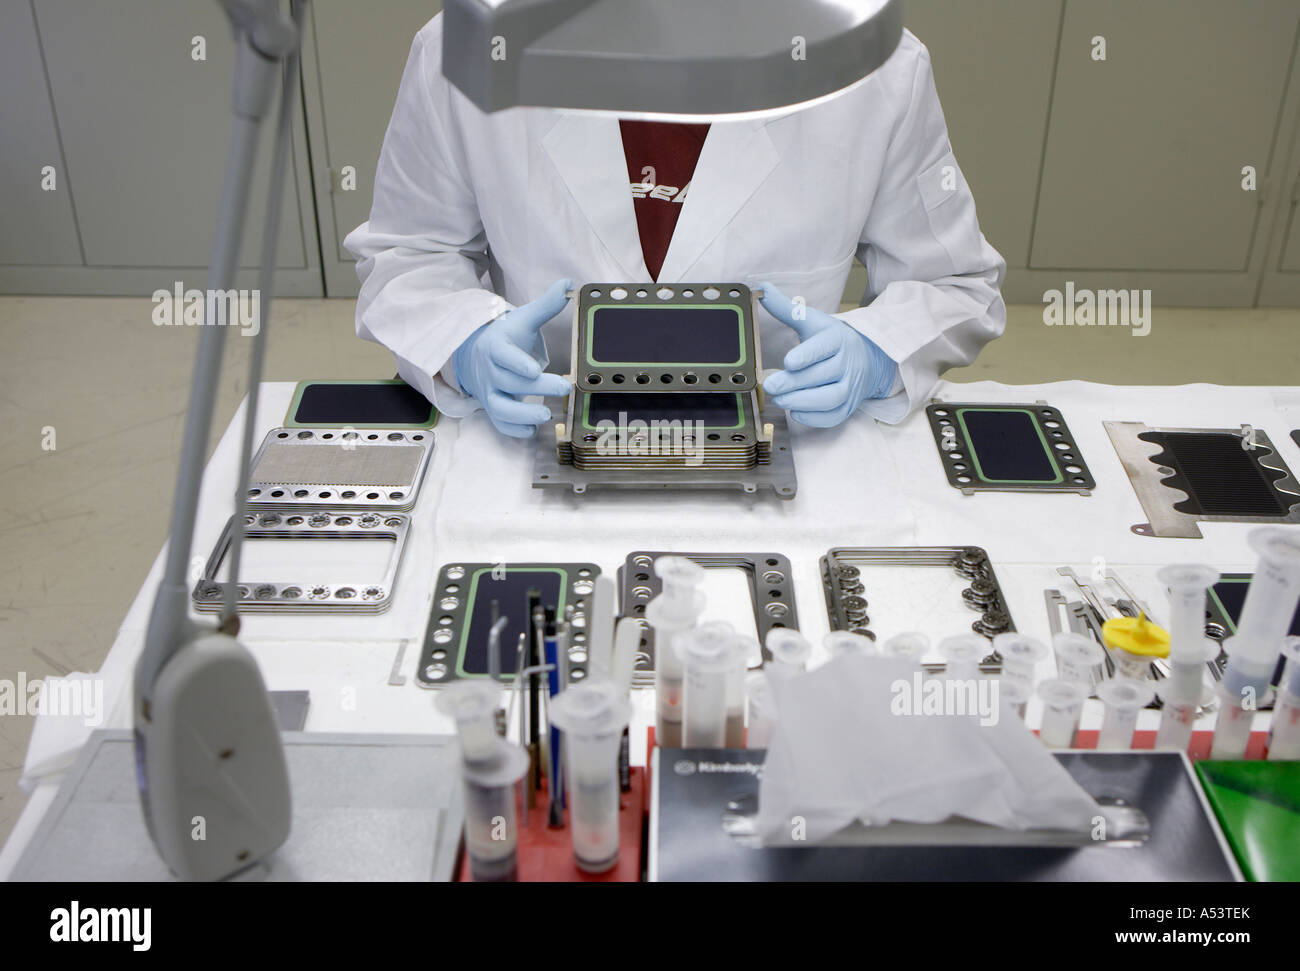 Production of fuel cell stacks, Juelich, Germany - Stock Image